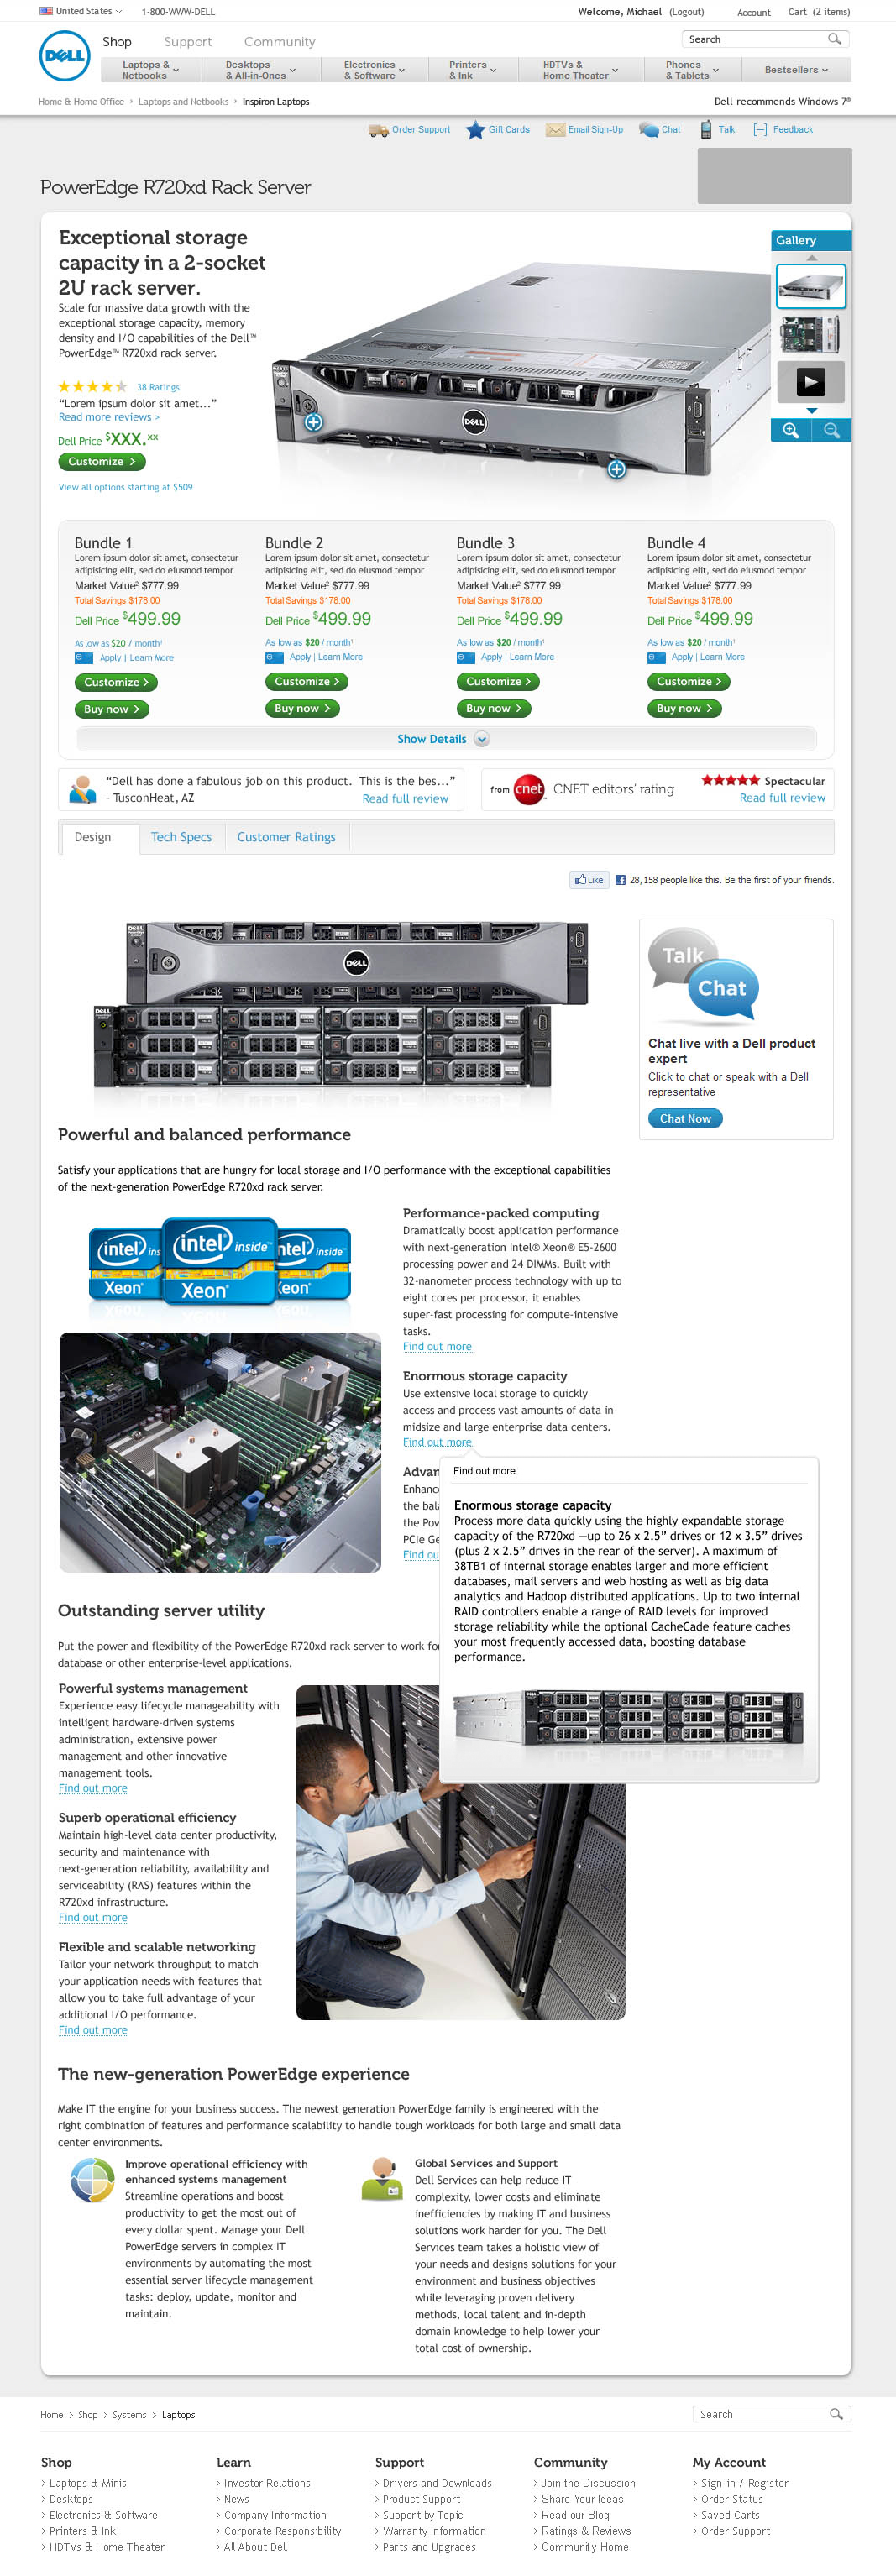 product details page